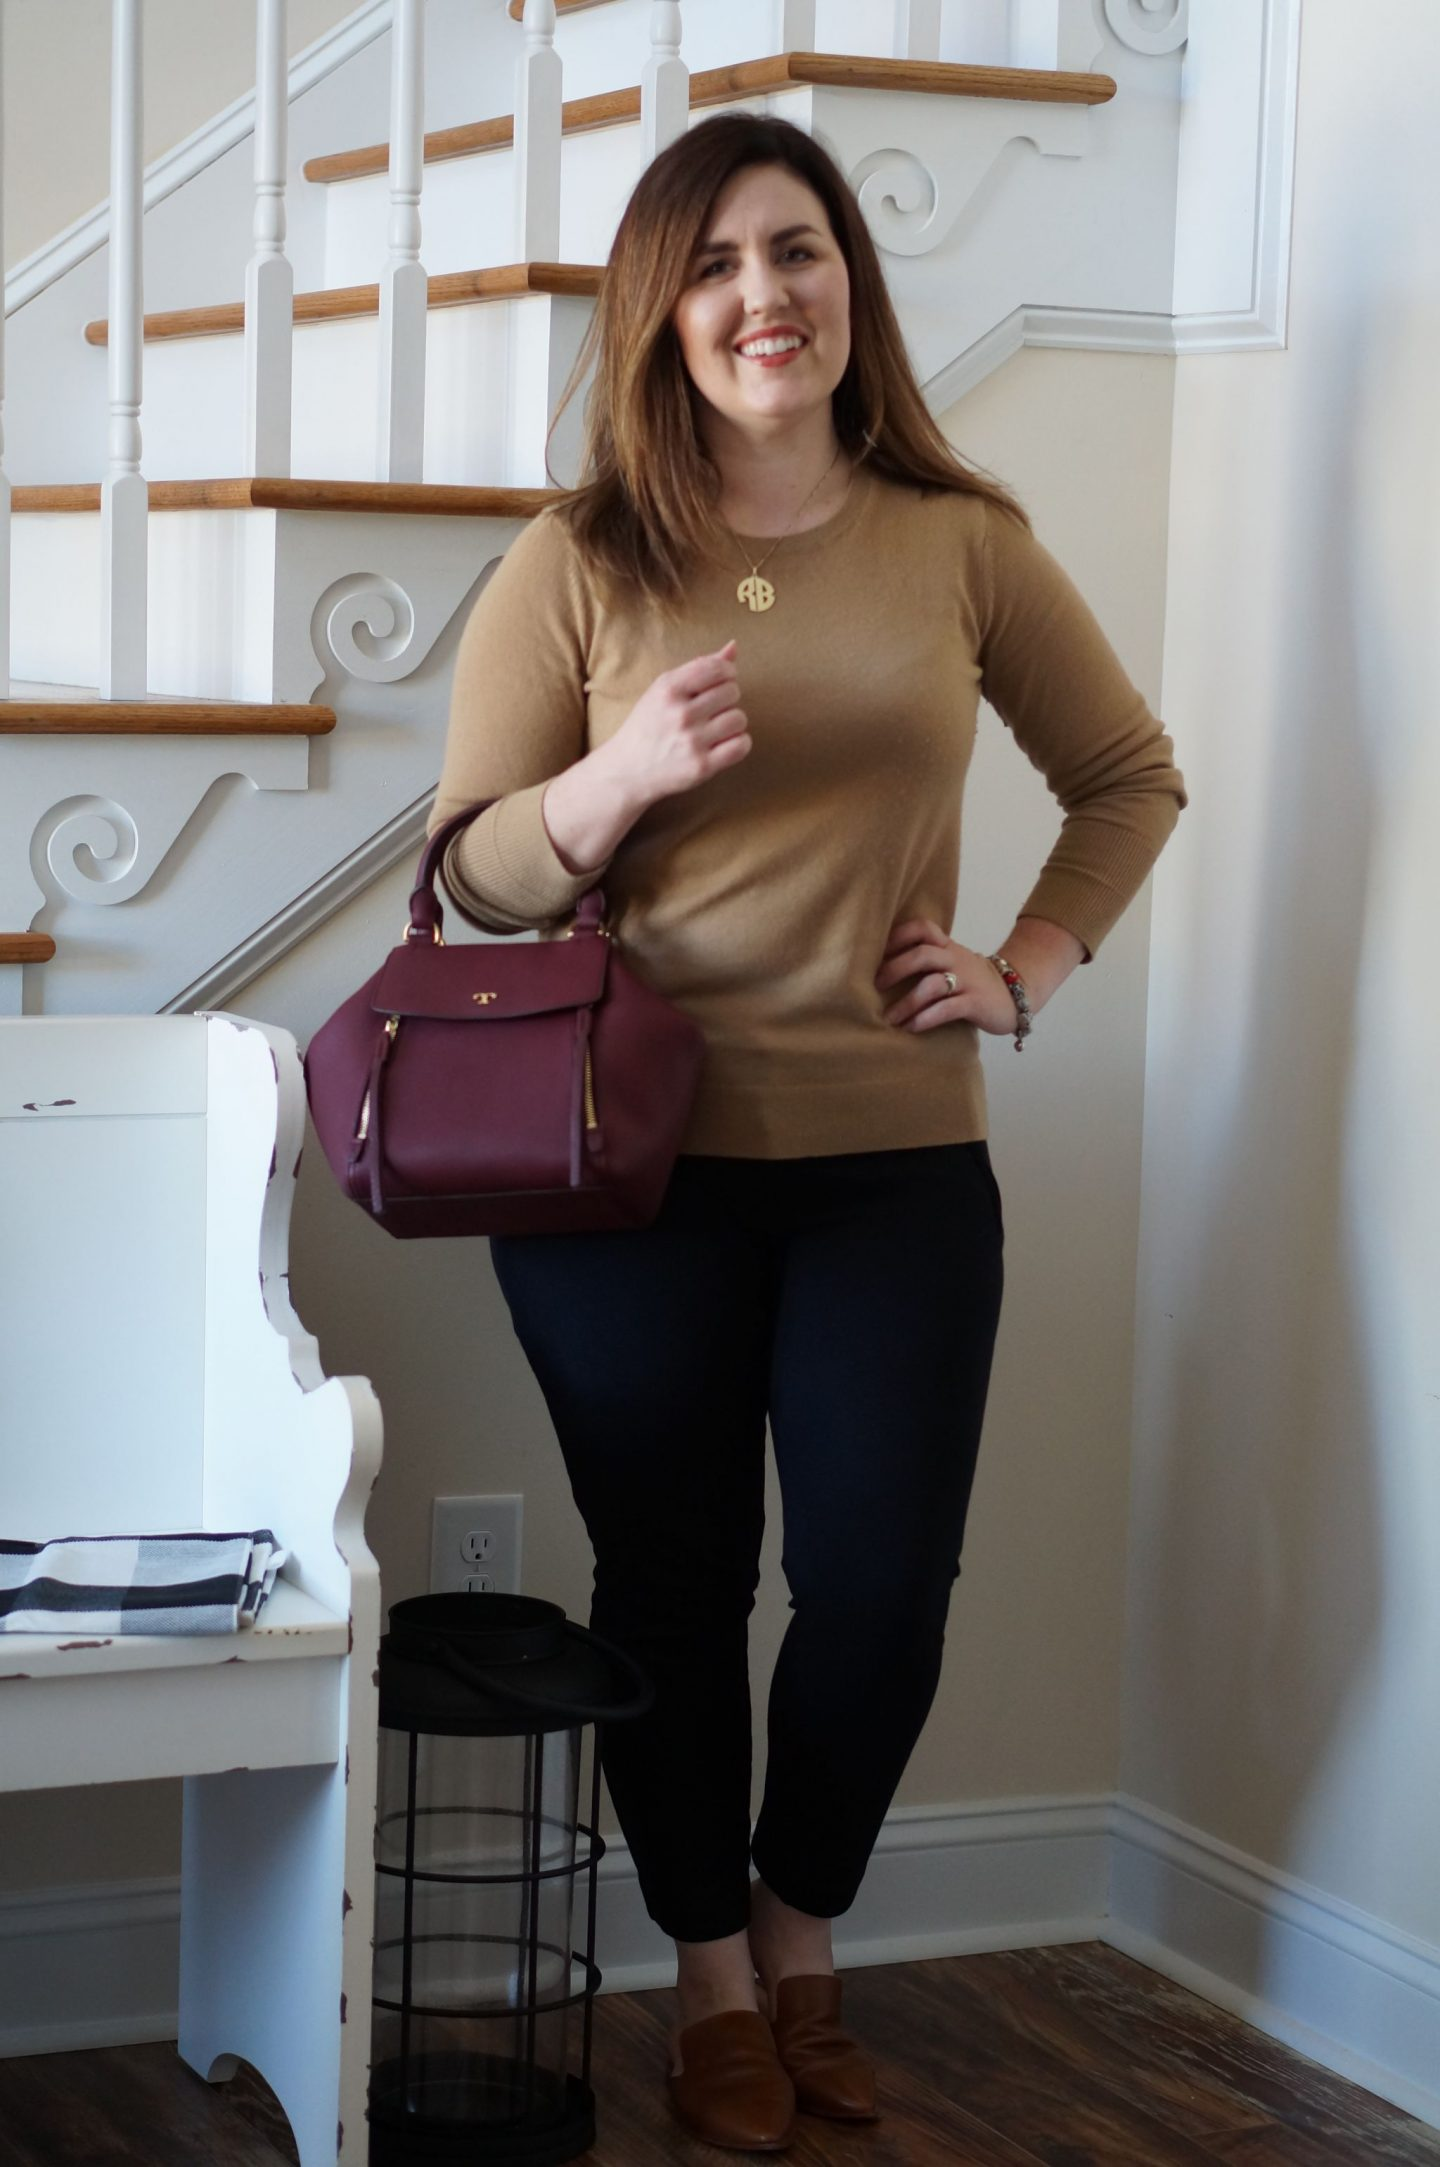 North Carolina style blogger Rebecca Lately shares the latest addition to her Everlane cashmere sweater collection. In today's post, she styles it for work.